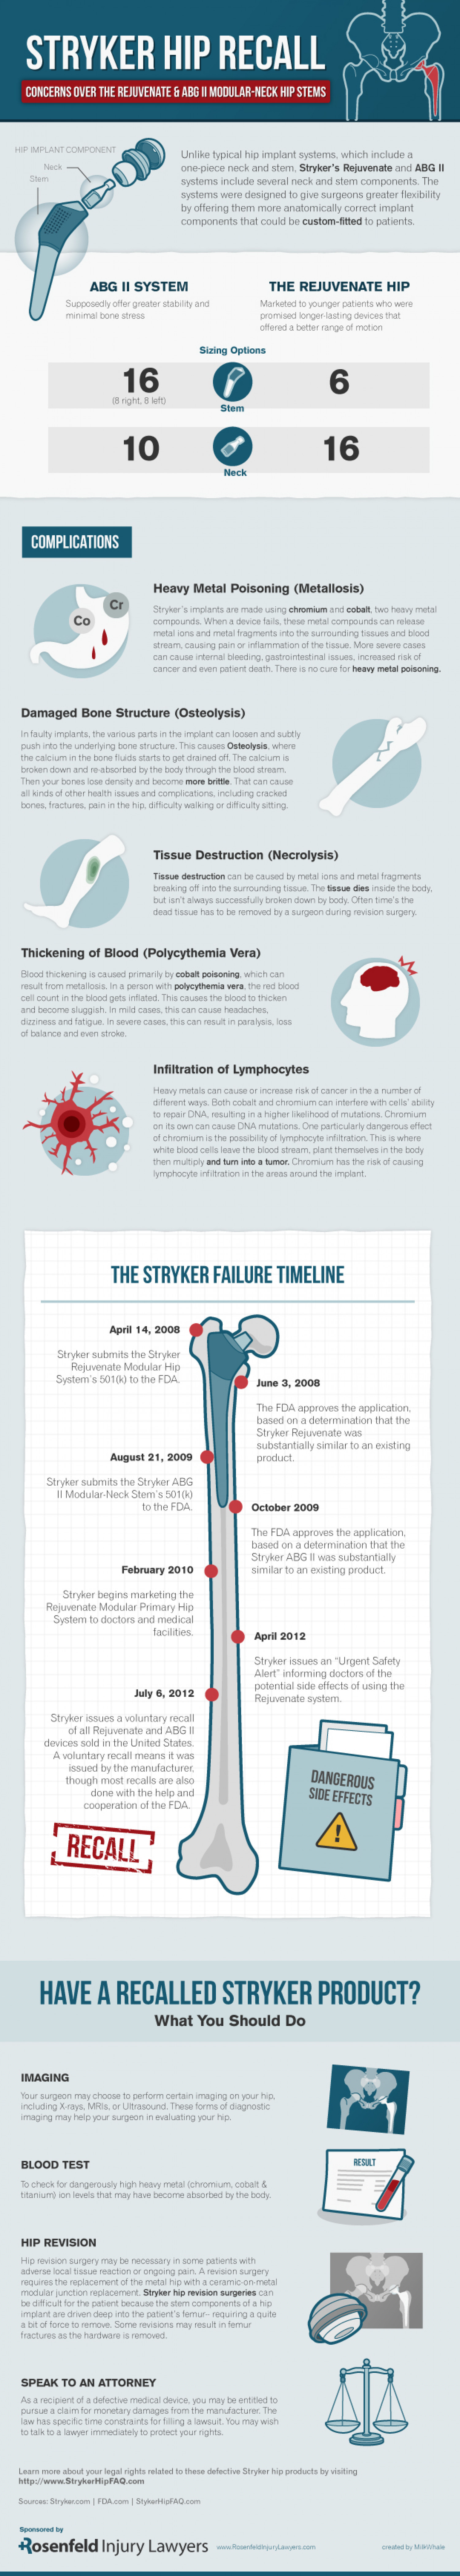 Stryker Hip Replacement Recall Infographic